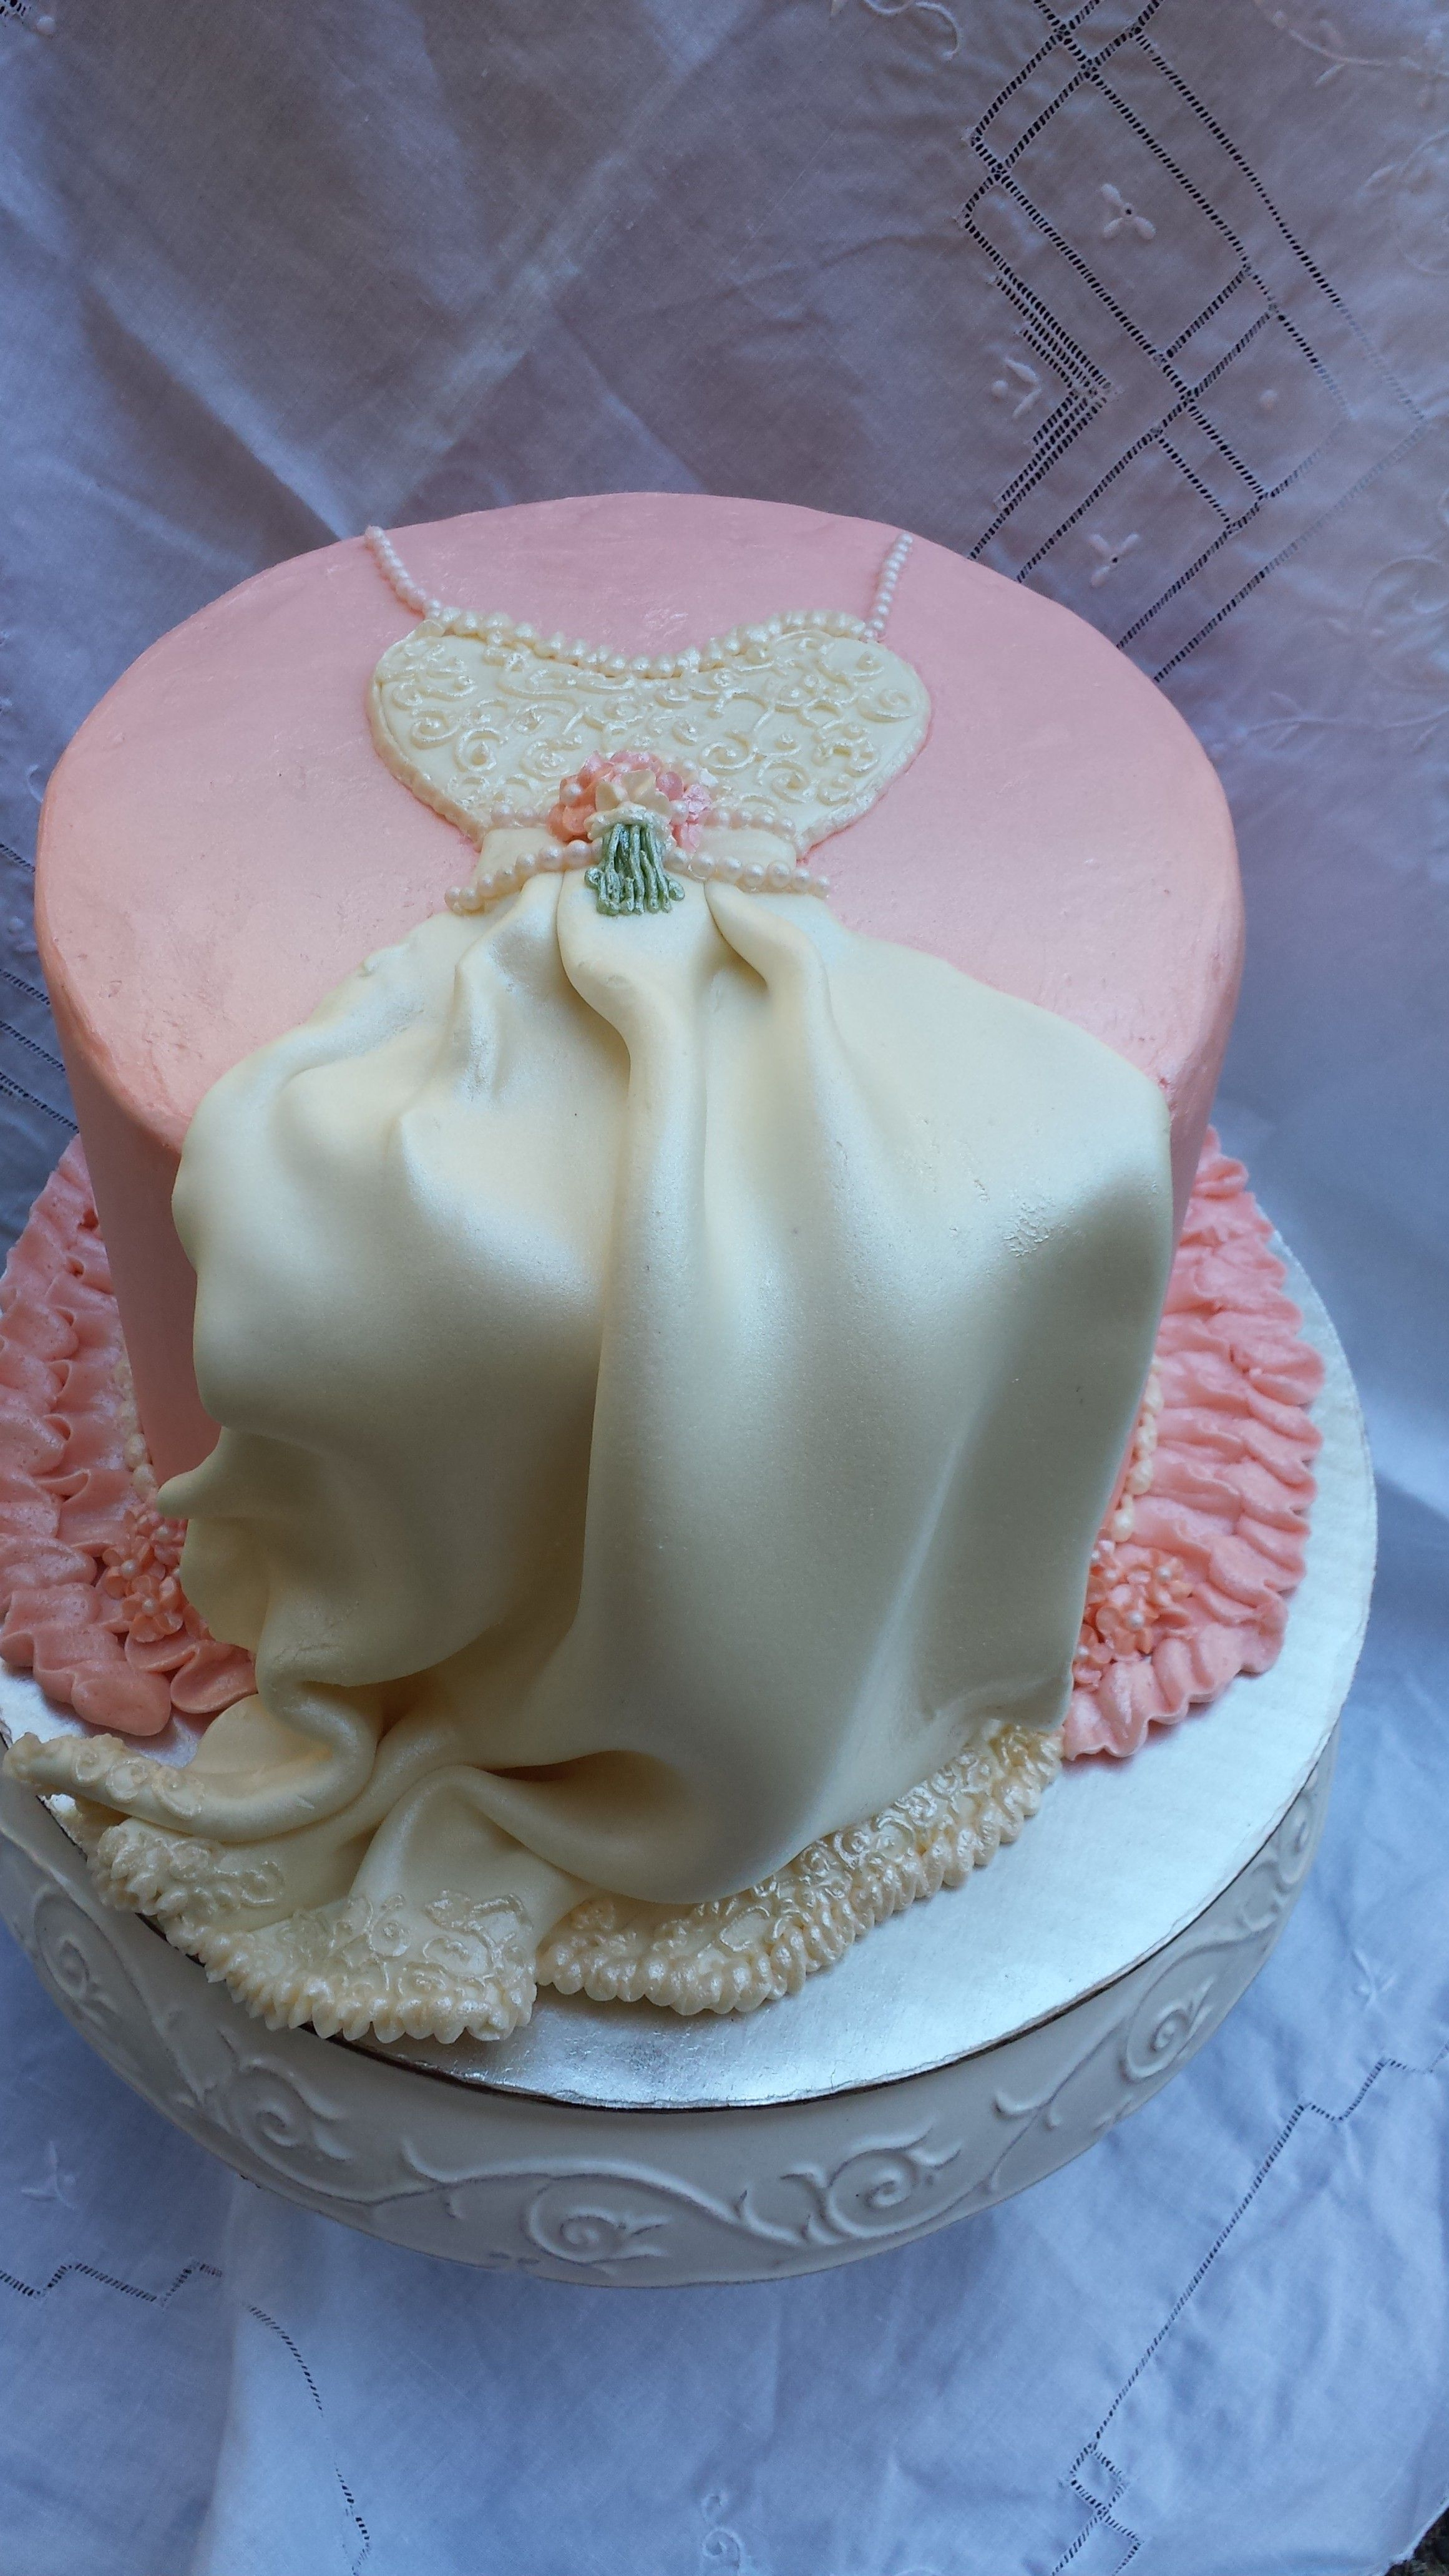 Classic wedding dress cake for shower - This is a white cake filled ...